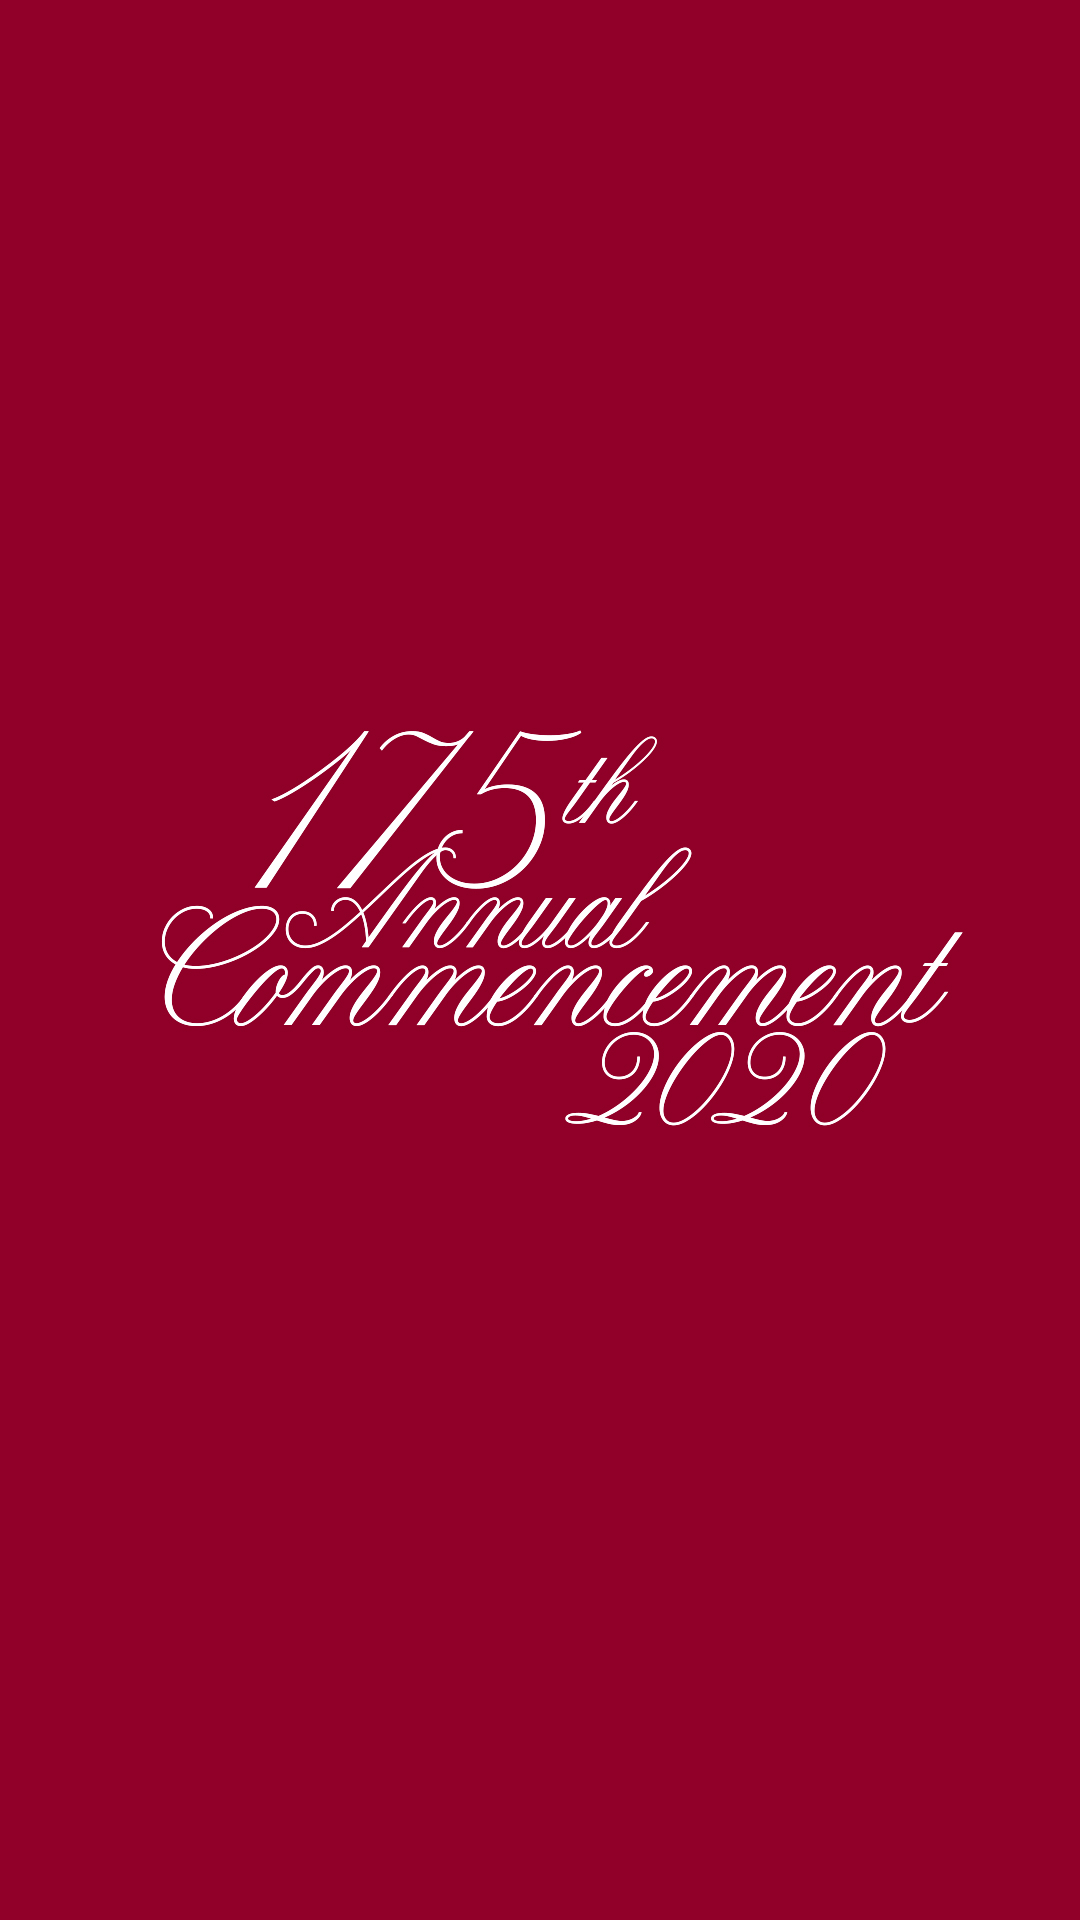 175th Commencement Centered Vertical Zoom Background